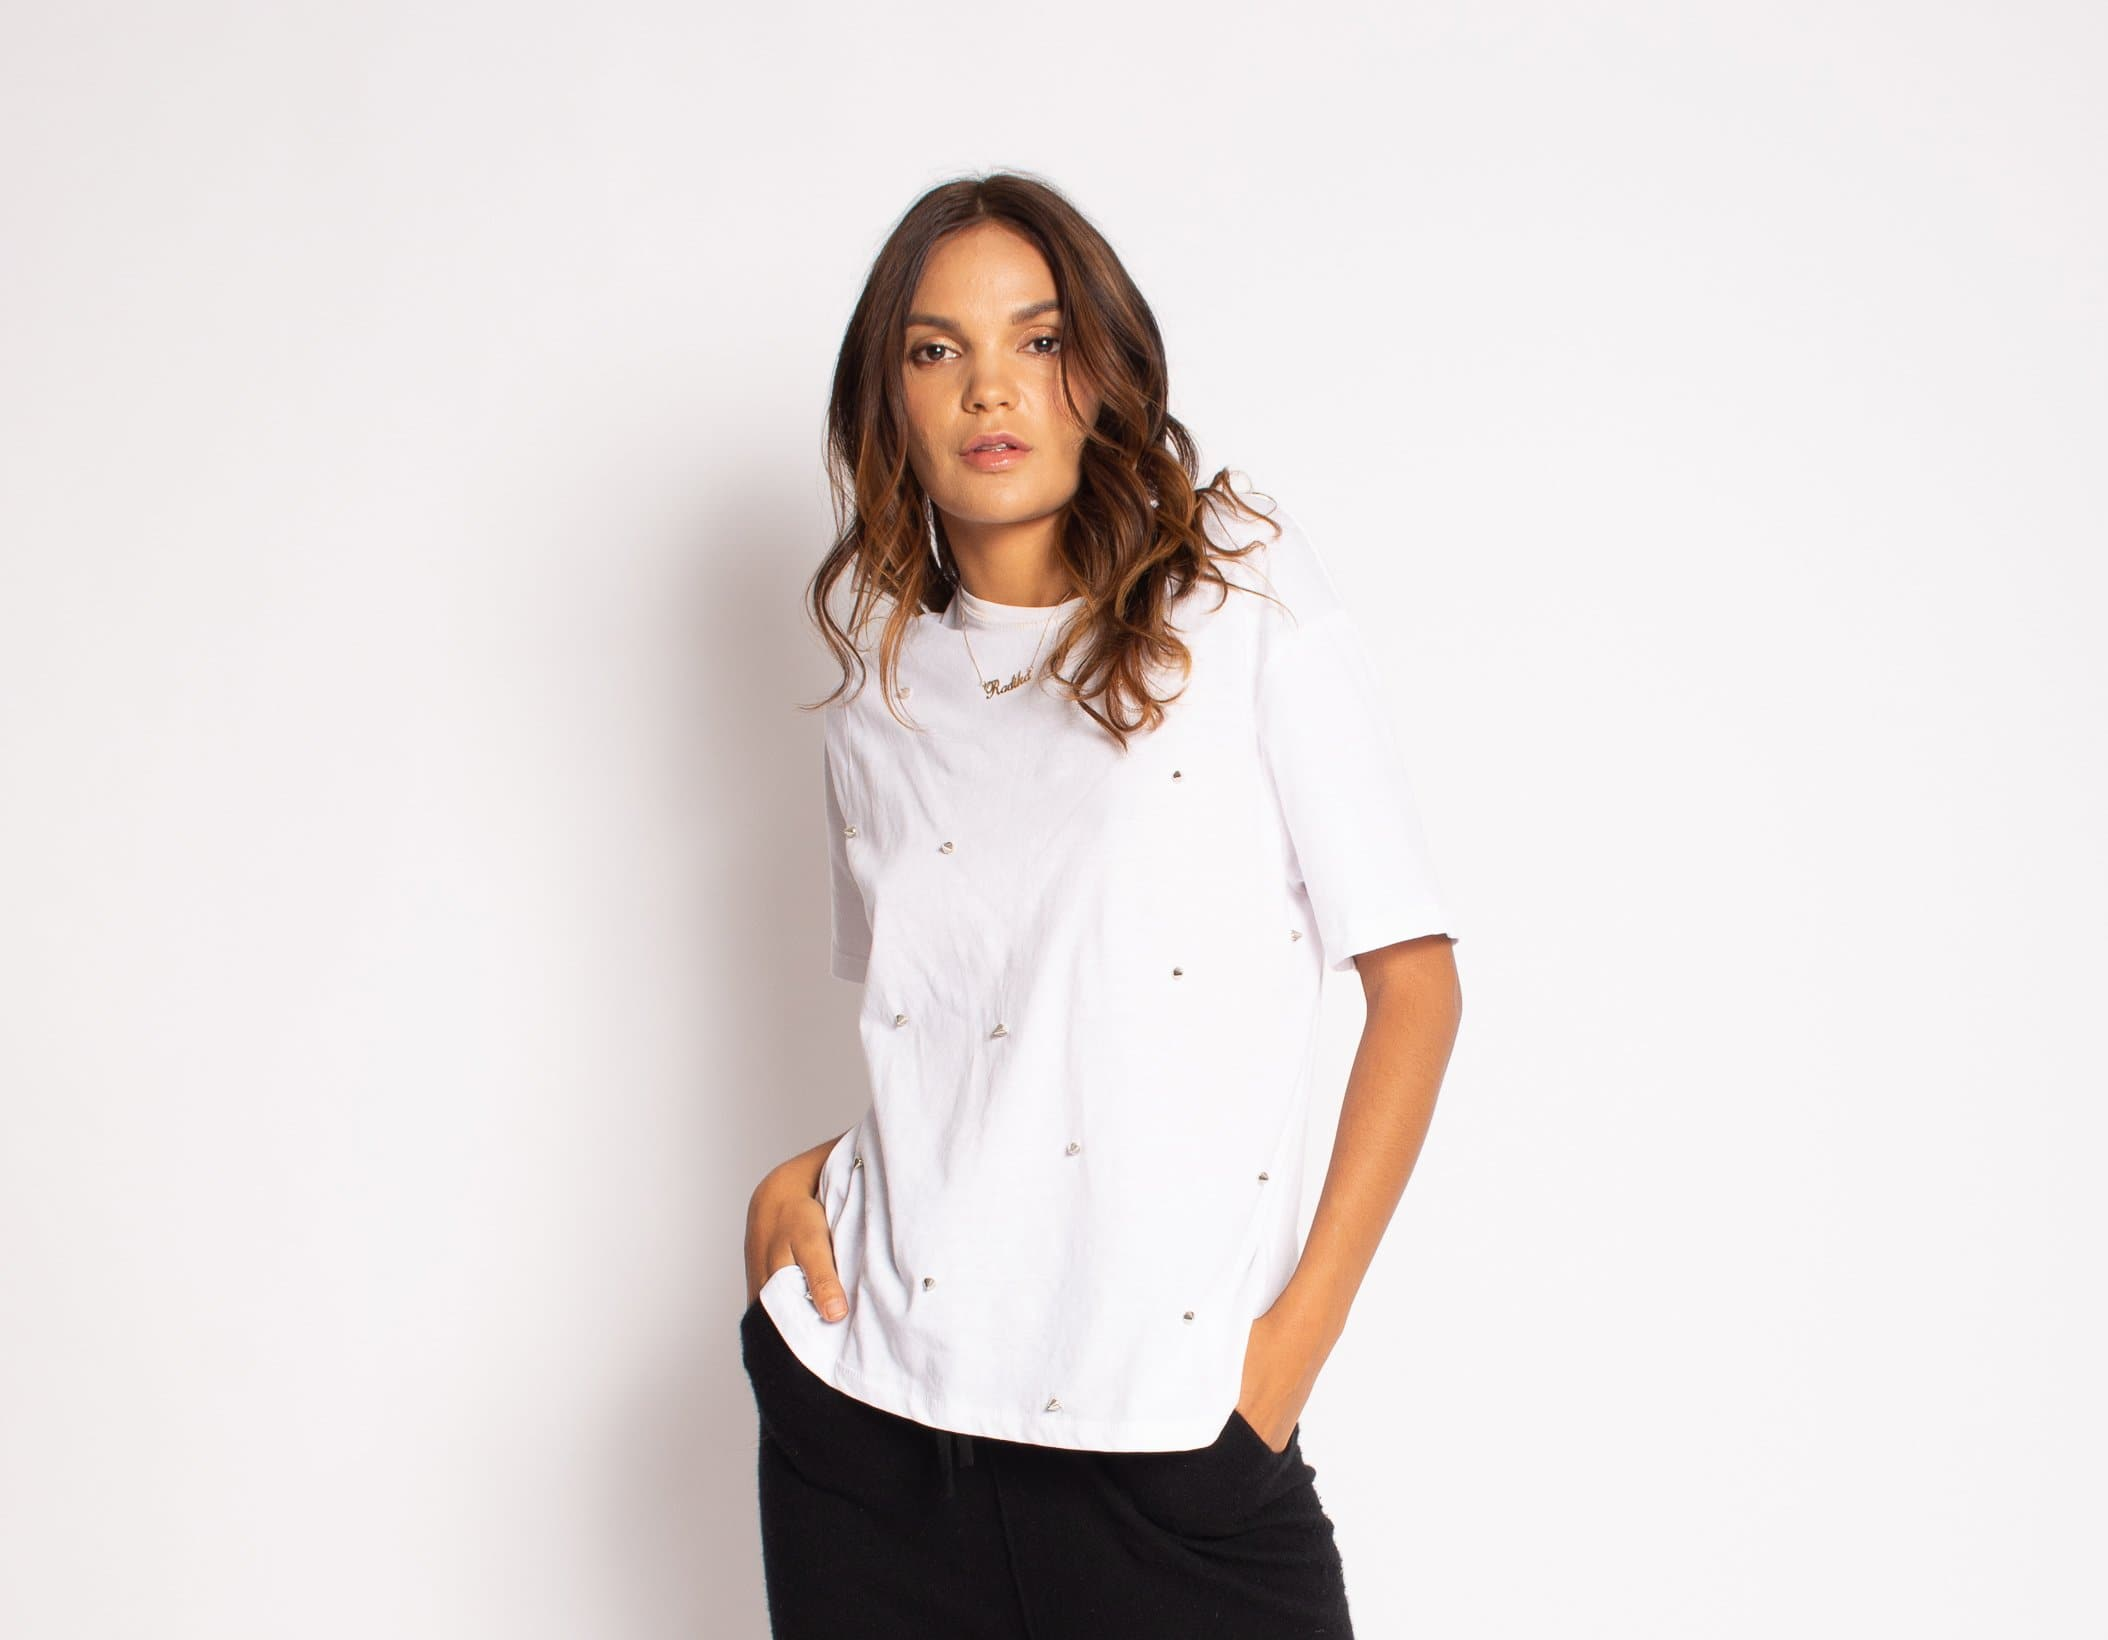 Everyday Embellished Organic Cotton Tee tops Karen Thomas NY s white